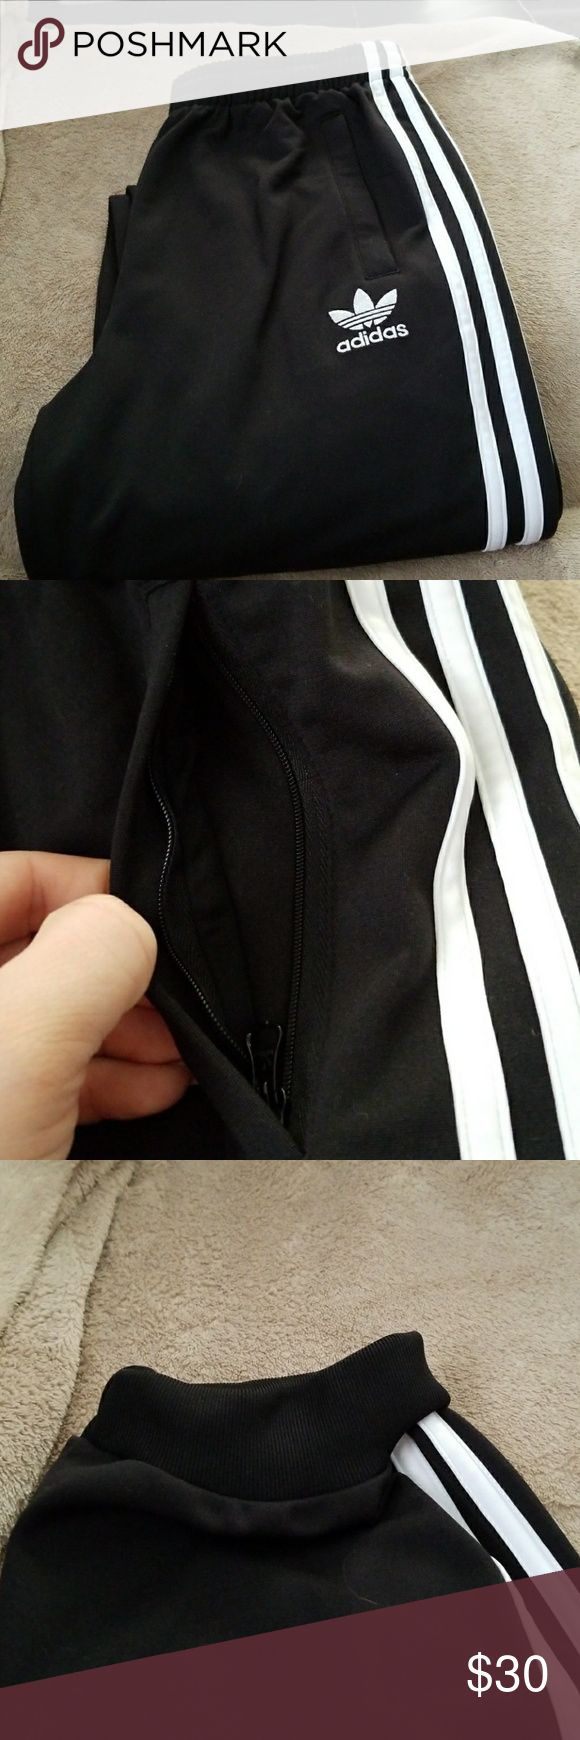 Adidas pants Kids large Adidas pants. I am 5 ft and 150 lbs and they fit me well. NWOT. OBO adidas Bottoms Sweatpants & Joggers